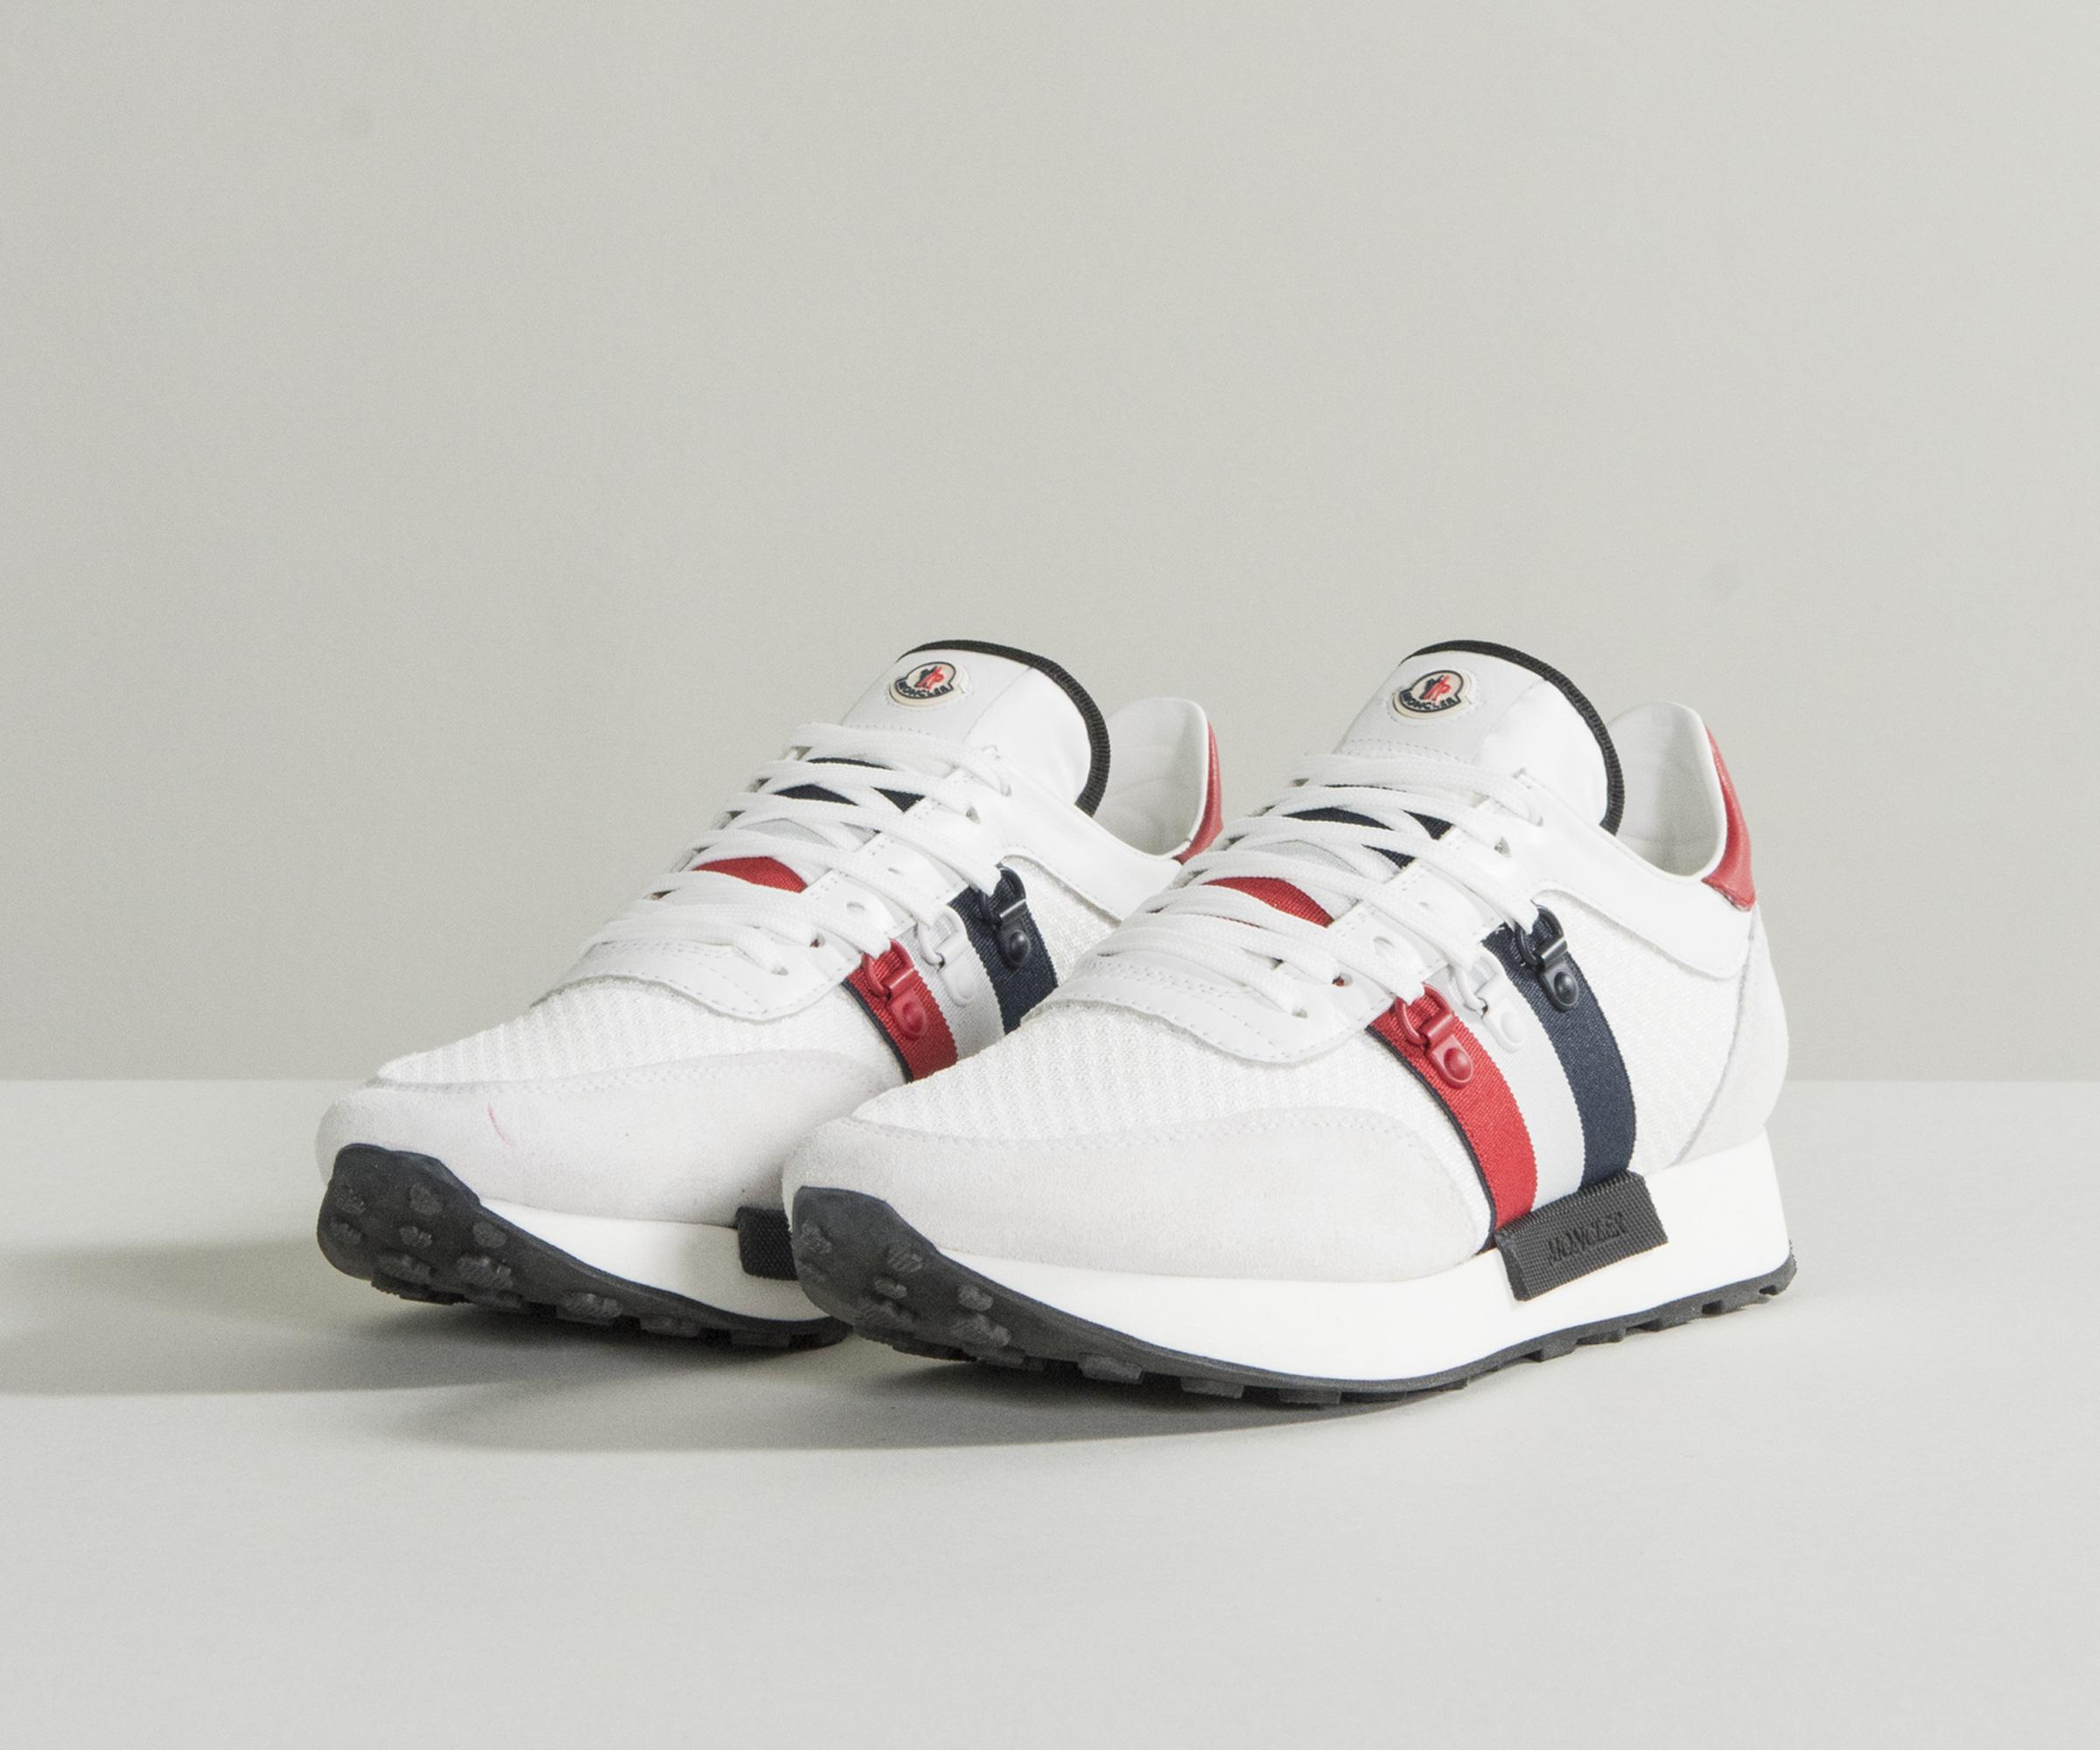 de0af2e48 Lyst - Moncler  new Horace  Trainers White in White for Men - Save 3%